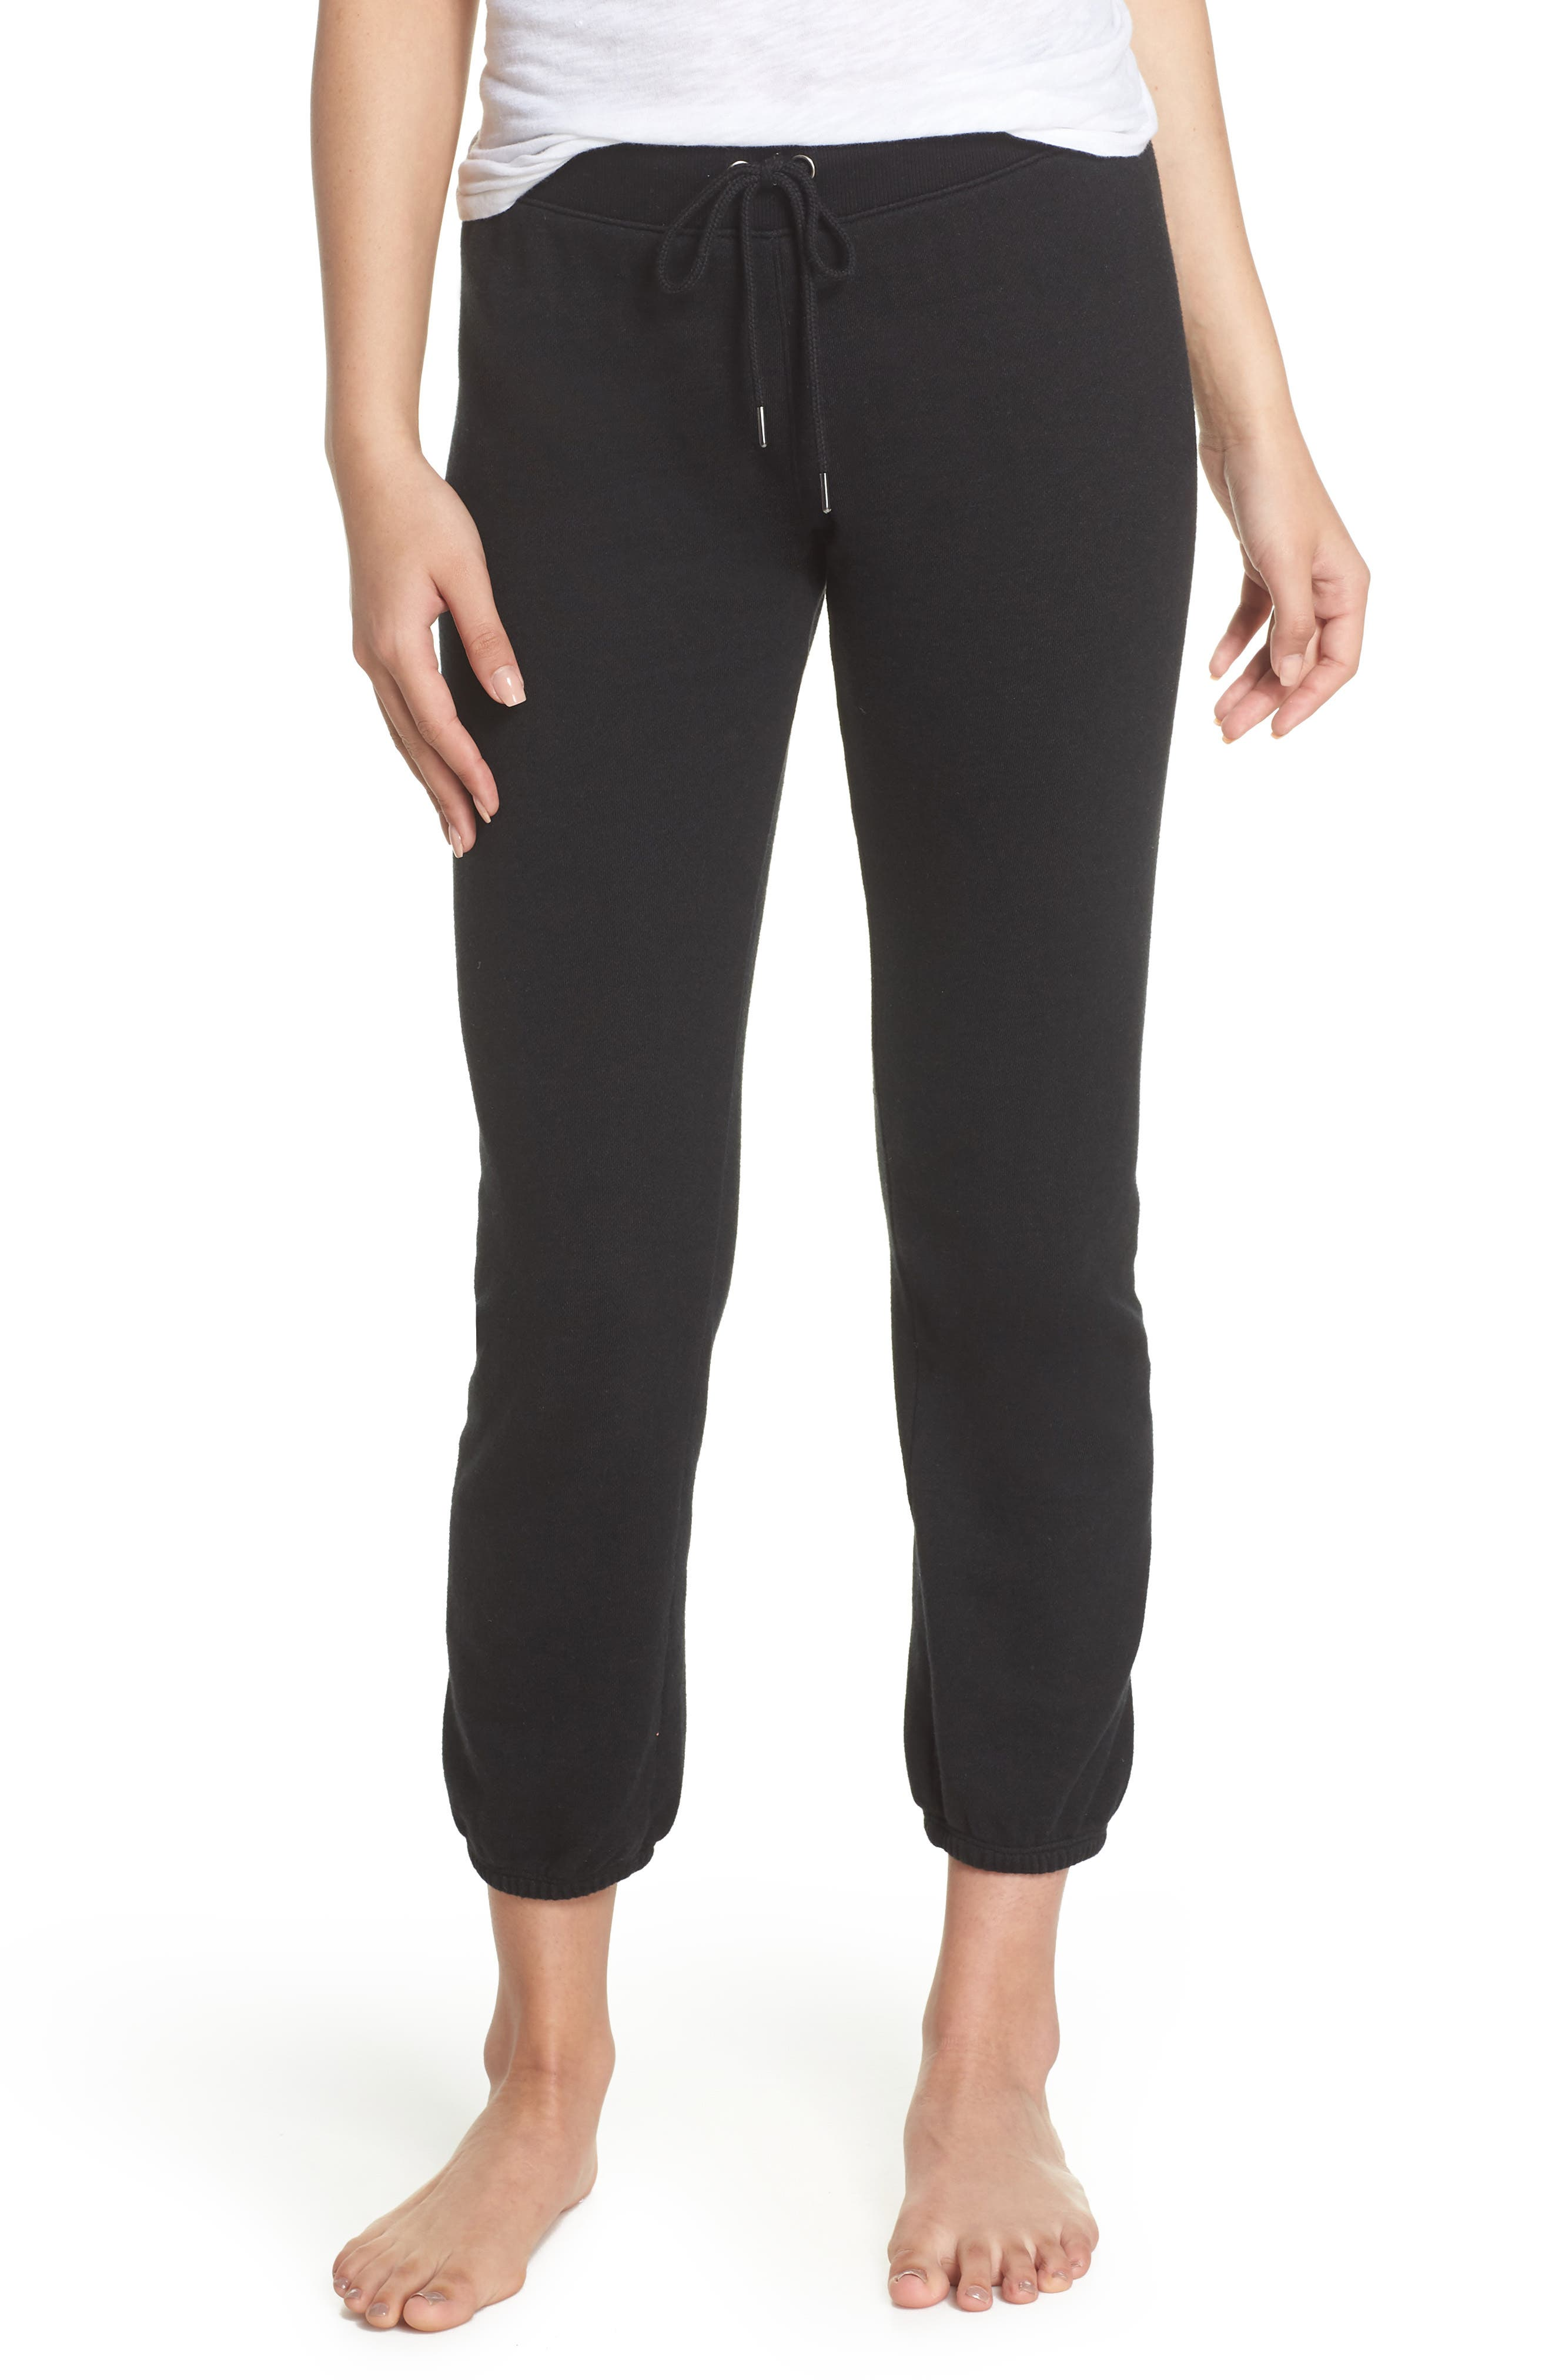 Loung Sweatpants,                         Main,                         color, FADED BLACK